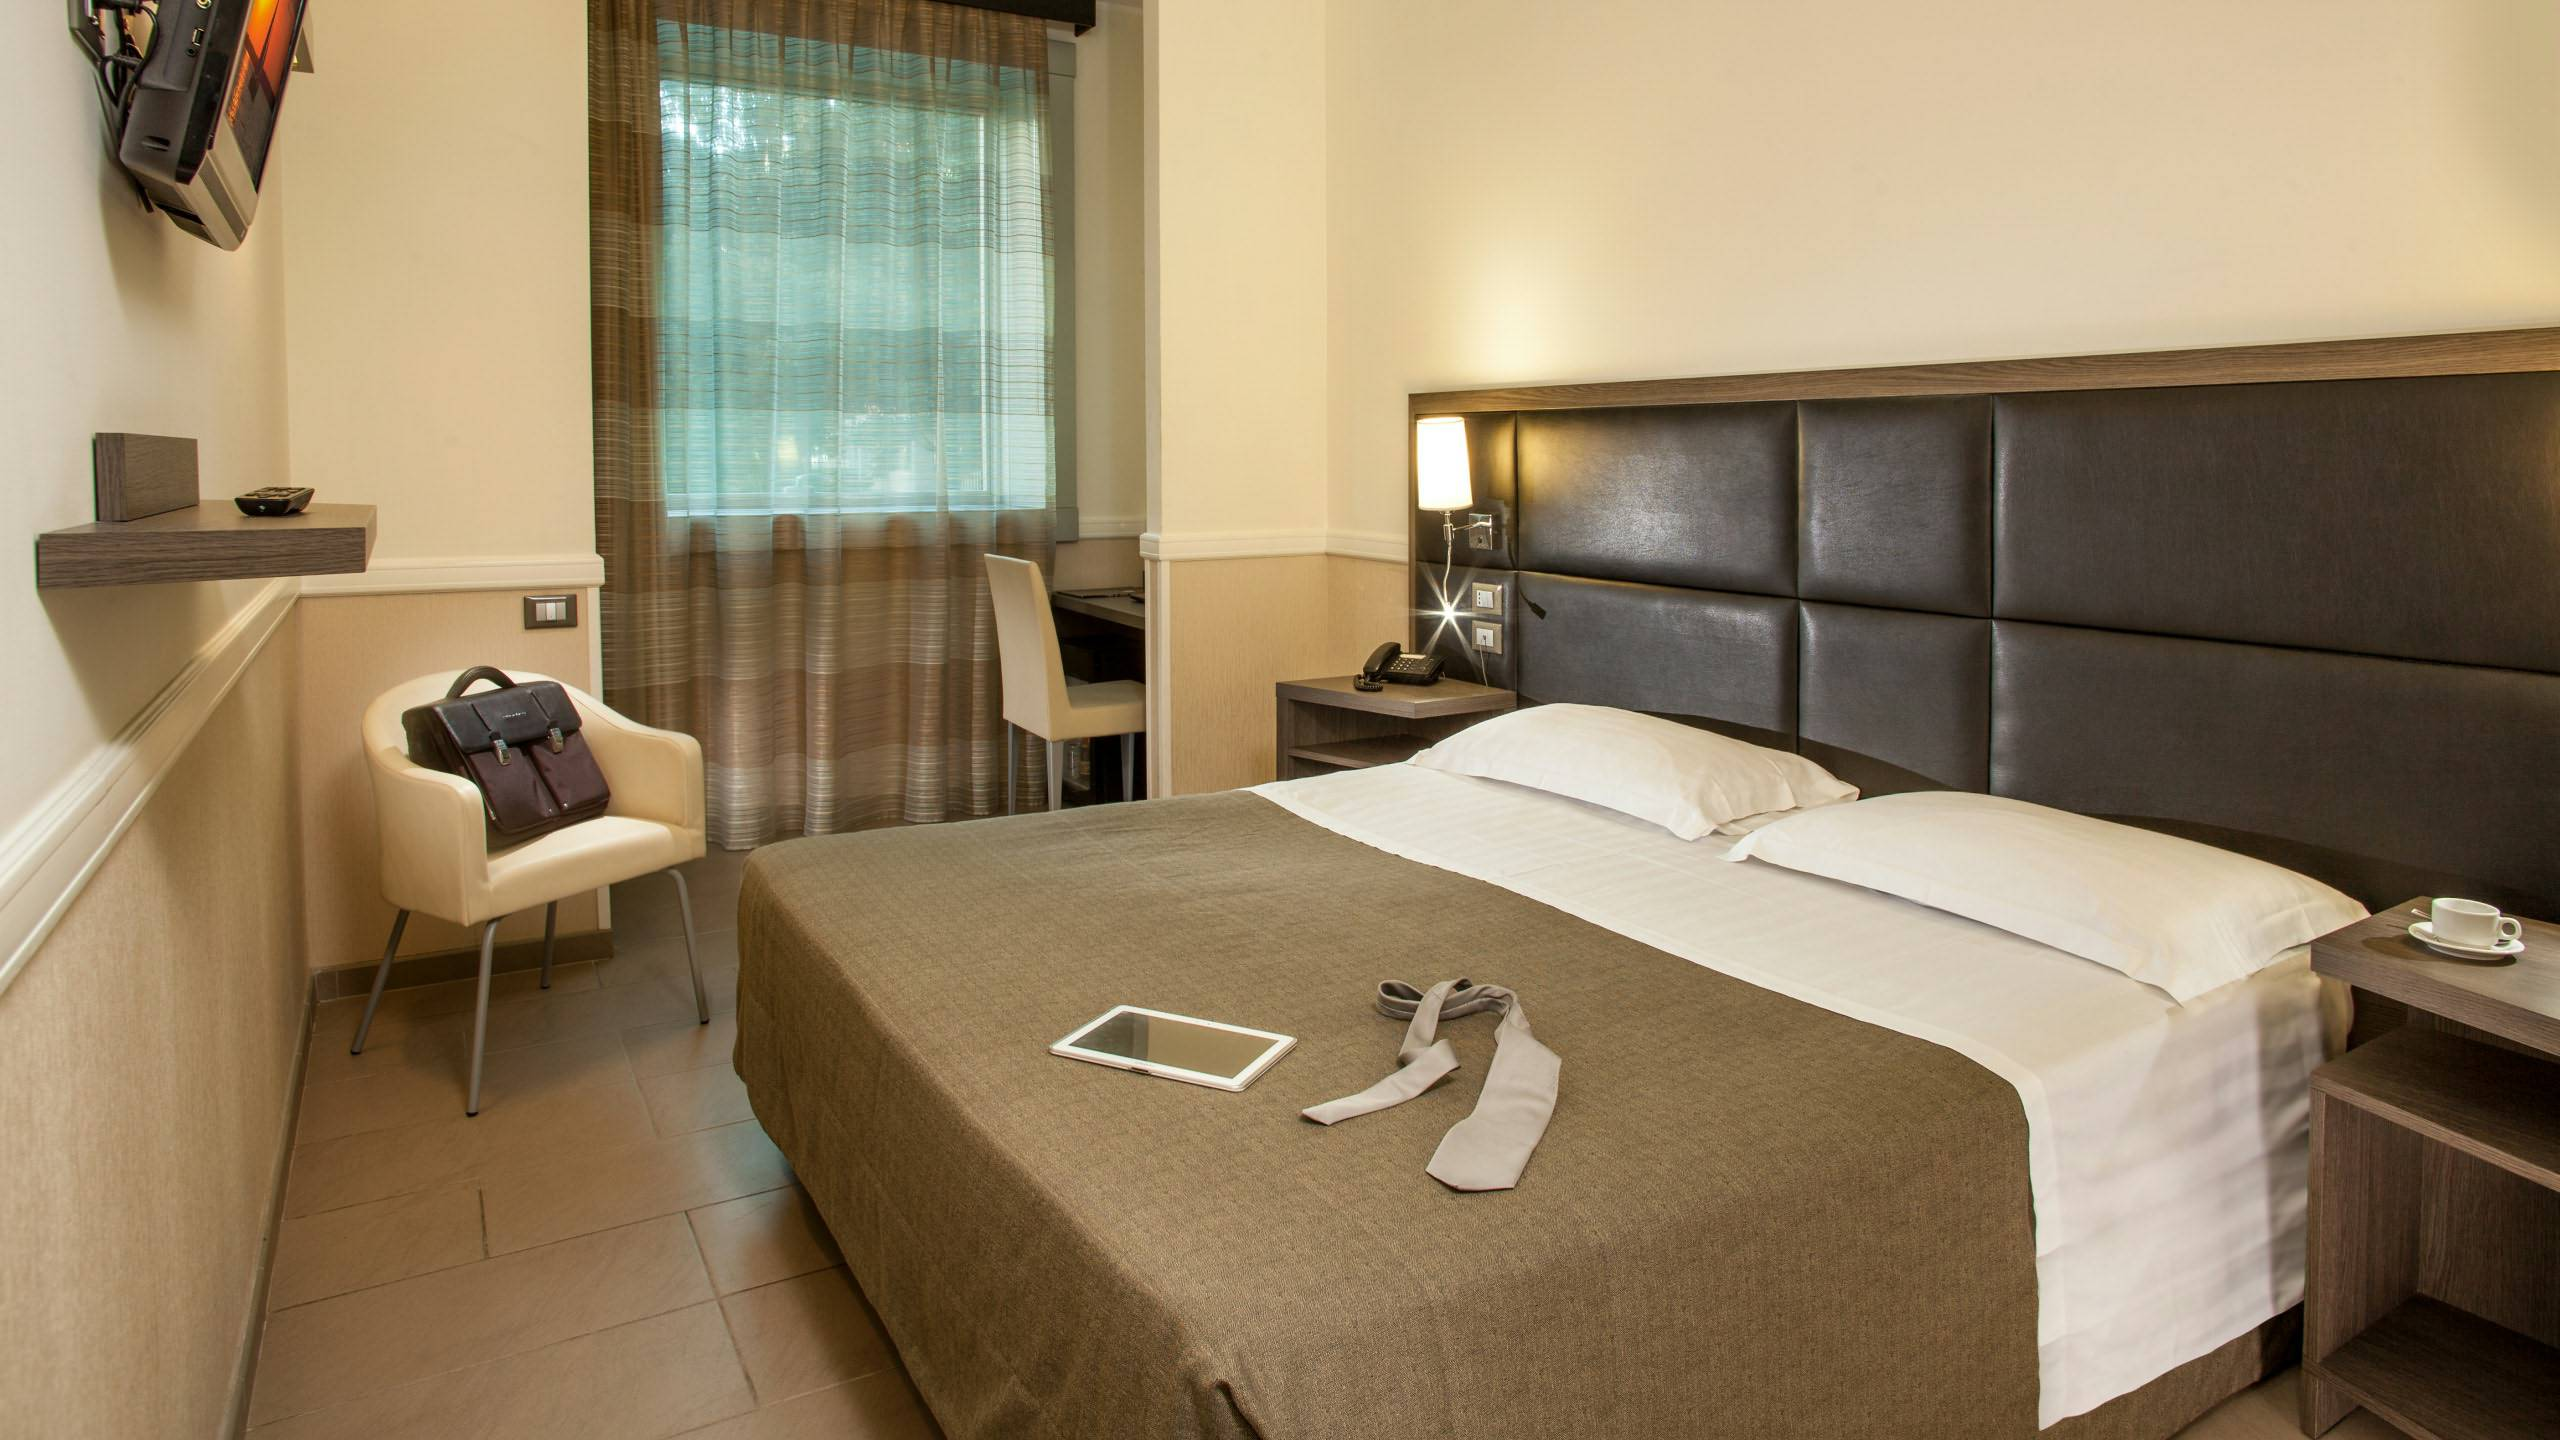 Hotel Artis Roma Official Website Home Page